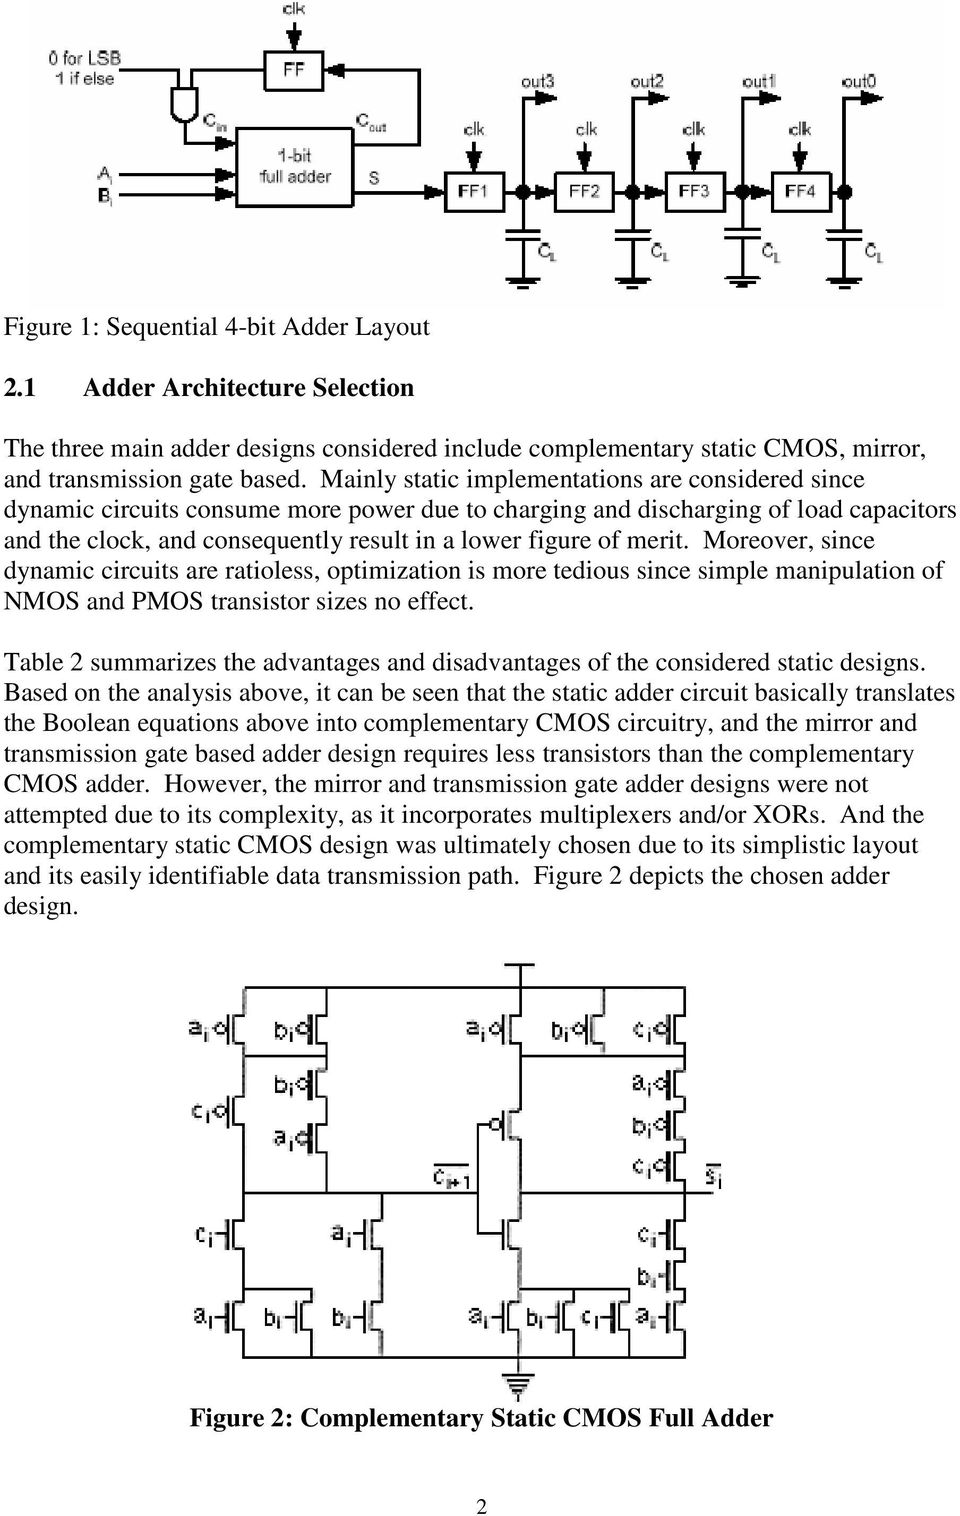 Sequential 4 Bit Adder Design Report Pdf Thus A 1bit Full Can Be Realized By The Following Circuit Moreover Since Dynamic Circuits Are Ratioless Optimization Is More Tedious Simple